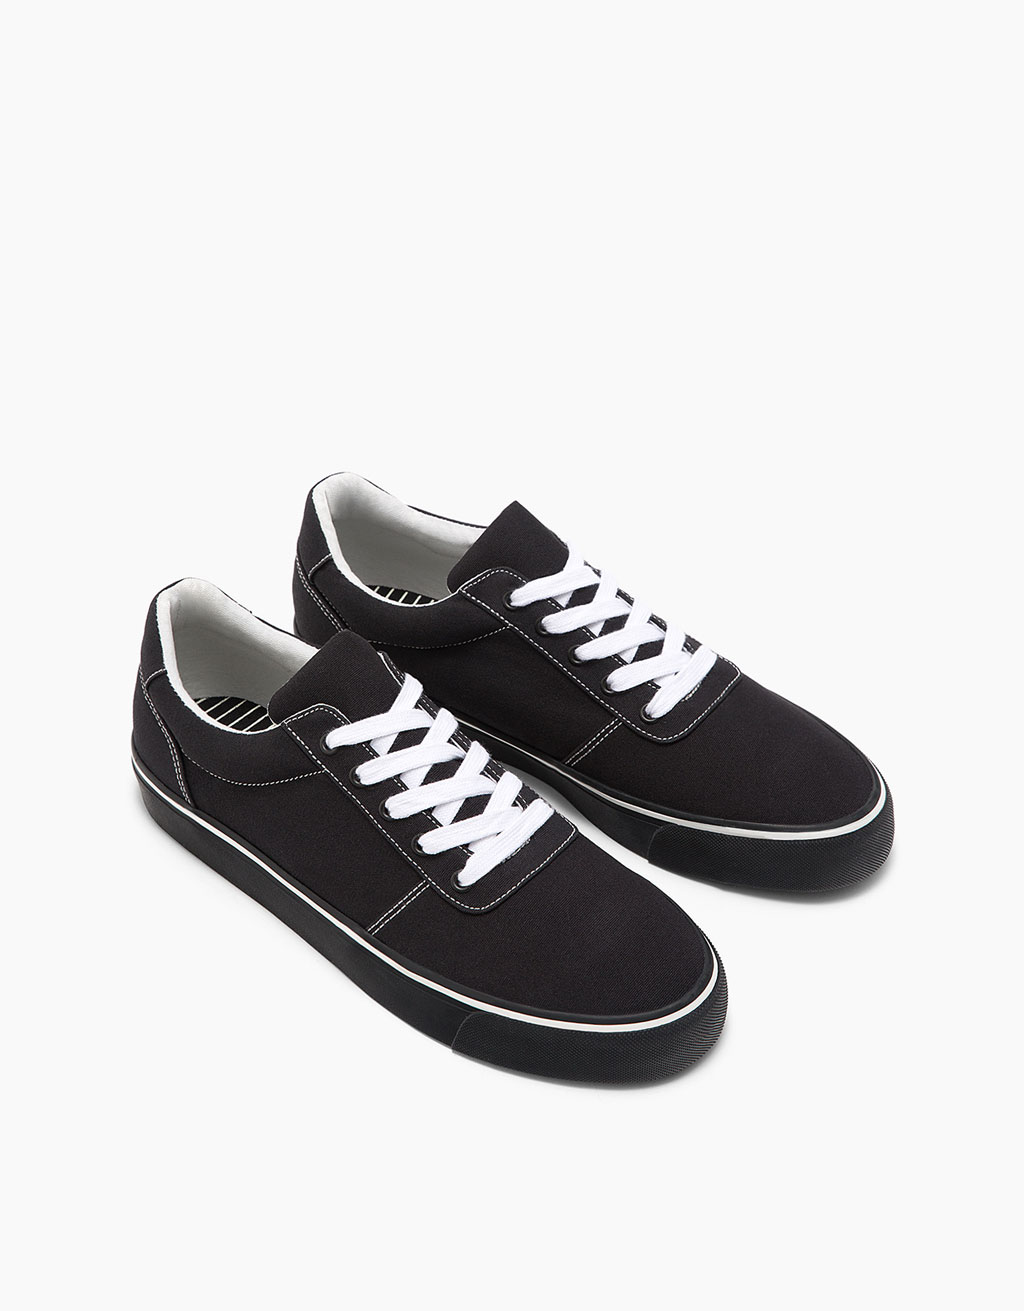 Men's black fabric sneakers